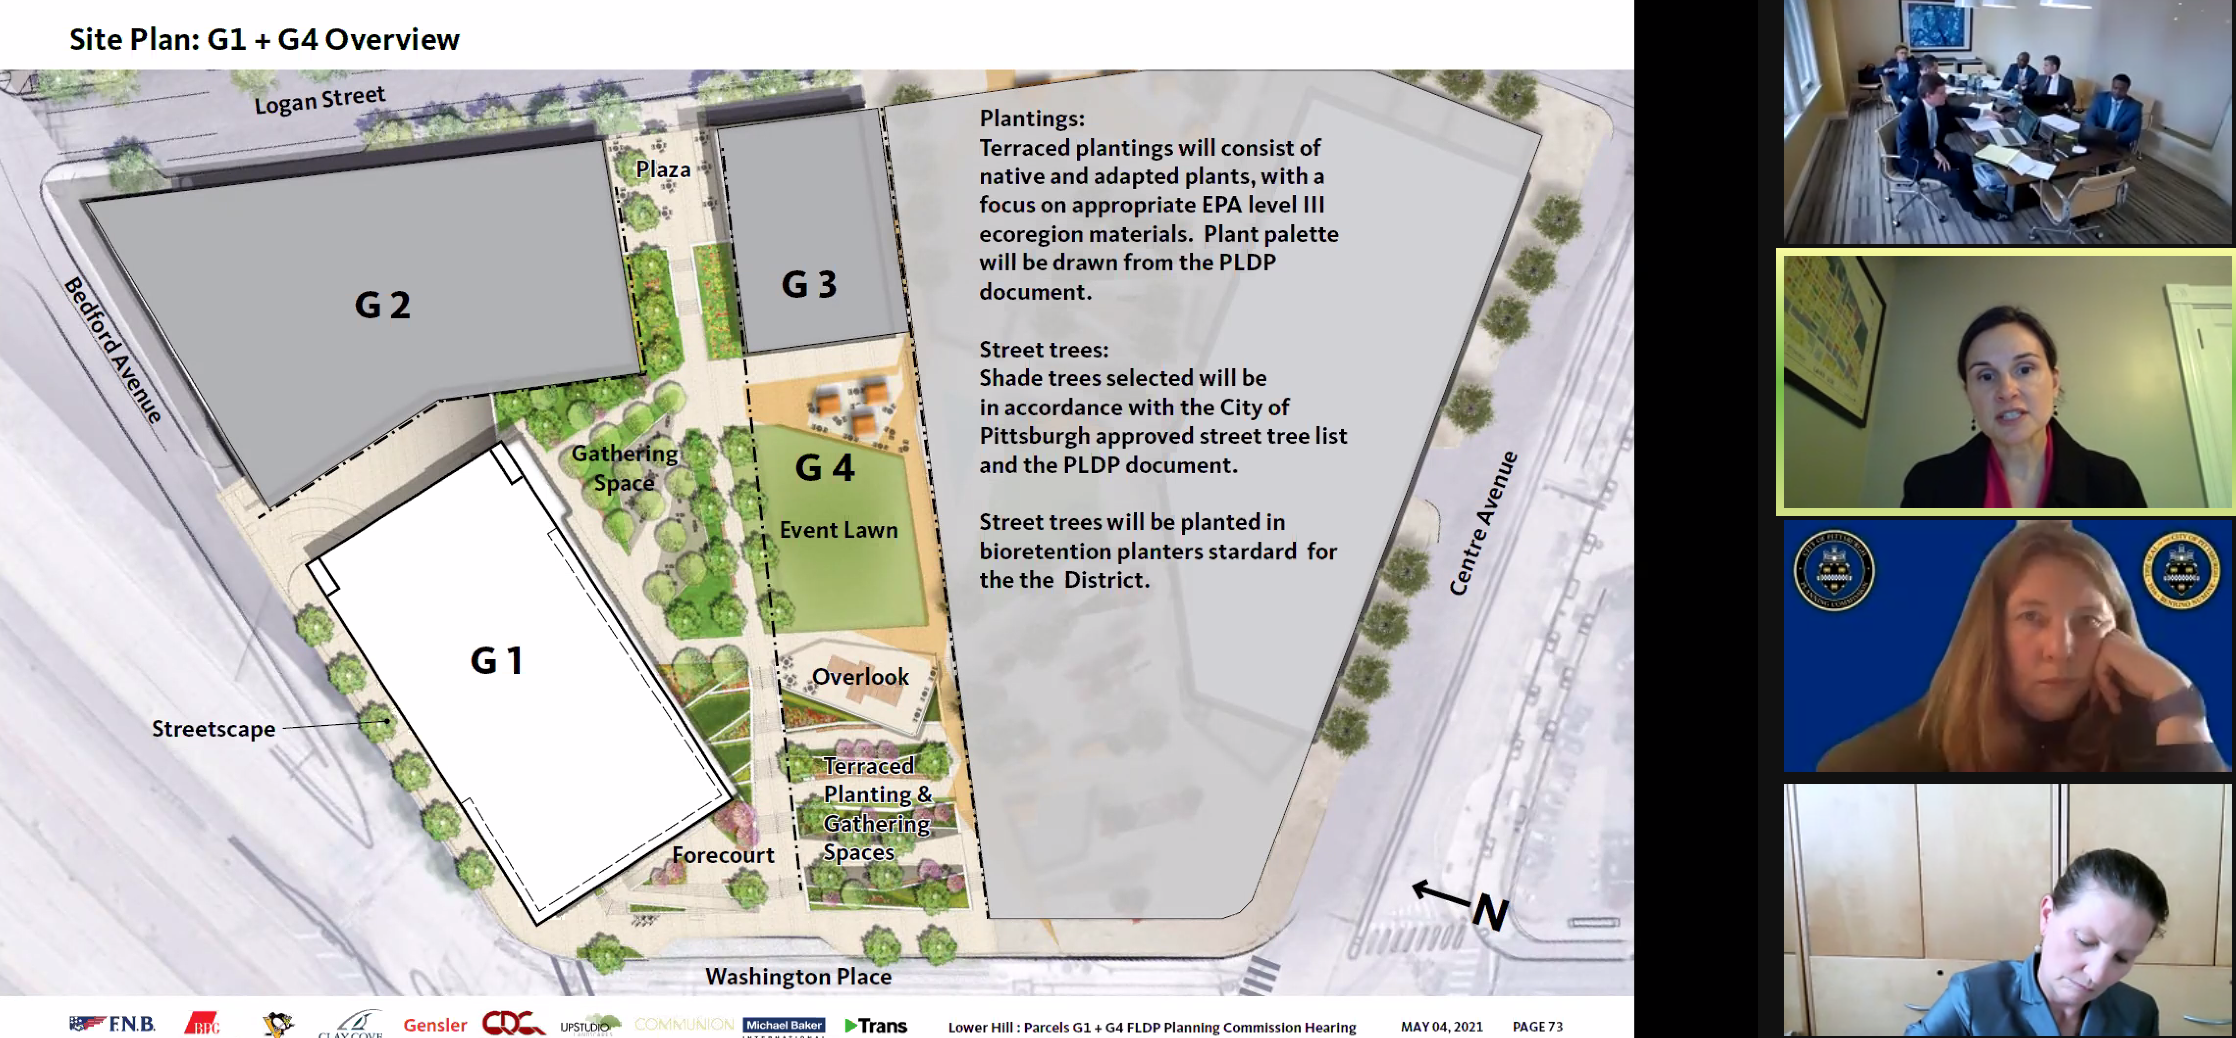 Map showing Buccini/Pollin Group plans for the end of the Civic Arena site closest to Downtown. Only the plans for the areas marked G1 and G4 were approved by the City Planning Commission on May 4, 2021.